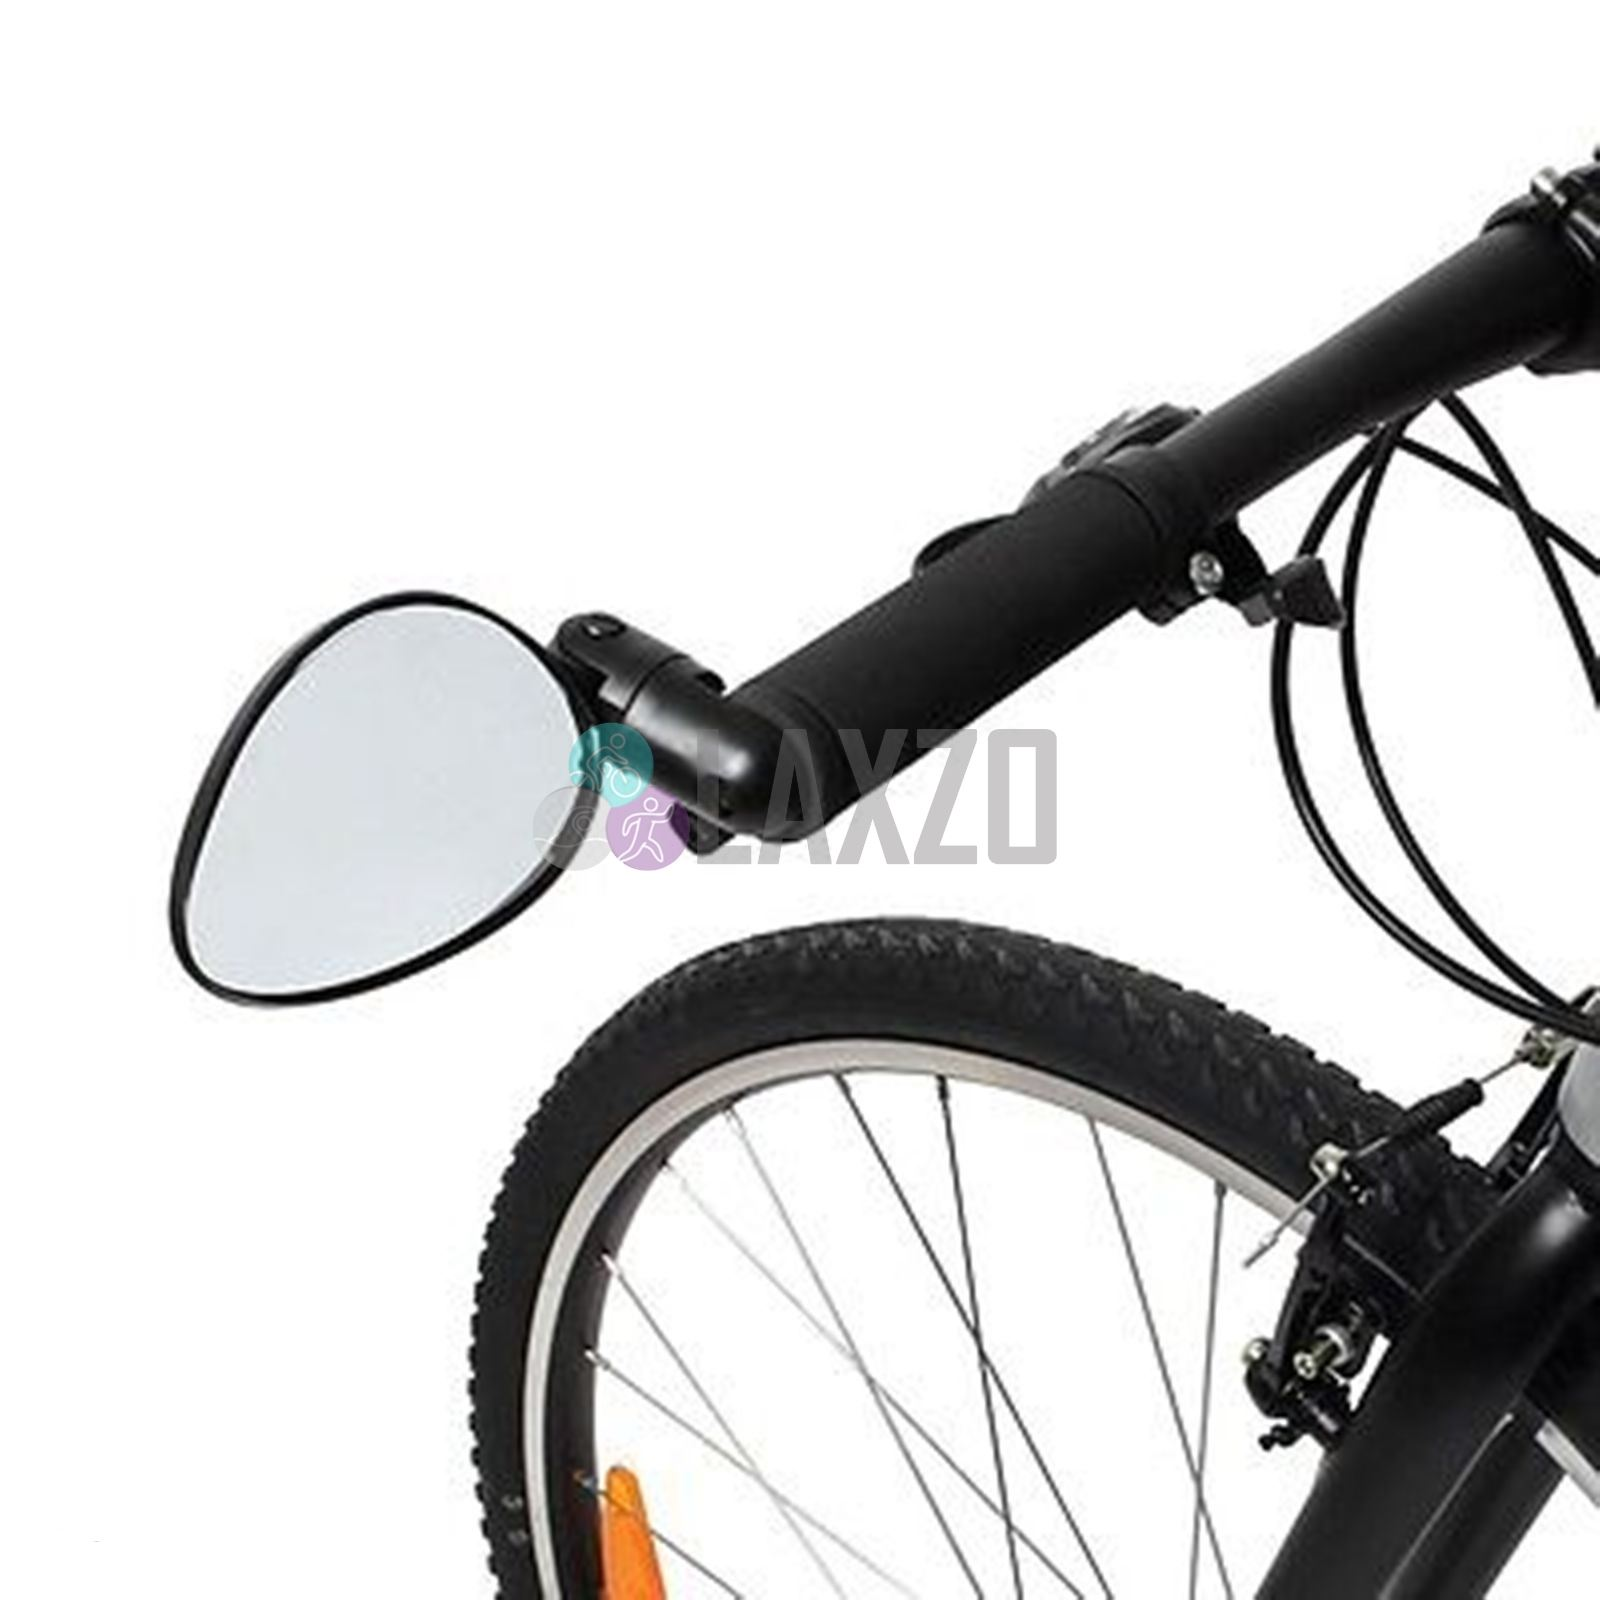 Zefal Cyclop Triple Adjustment Bar End Mounted Bike Mirror For Urban And Commute